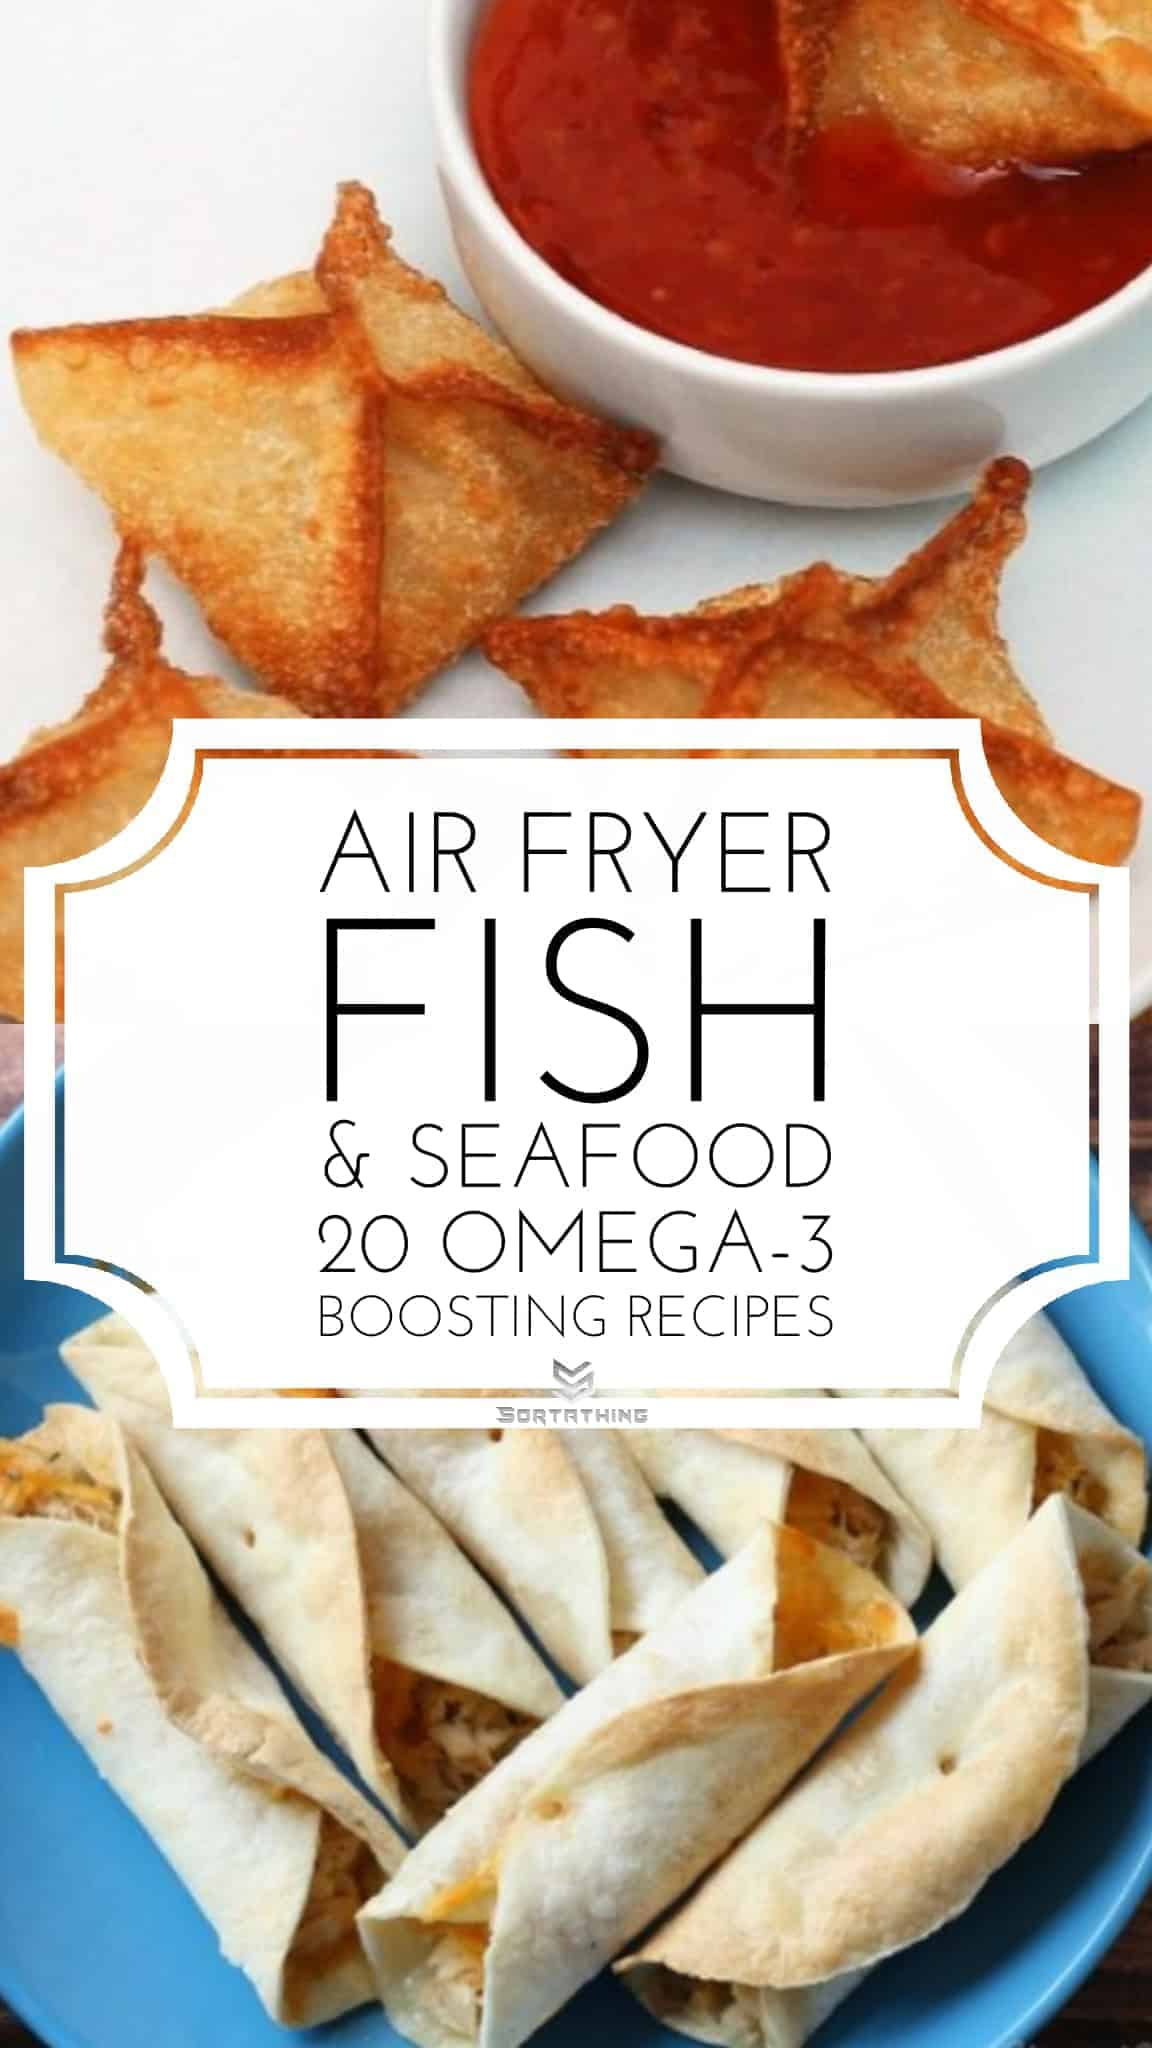 Air Fryer Crab Rangoon & Tuna Flautas